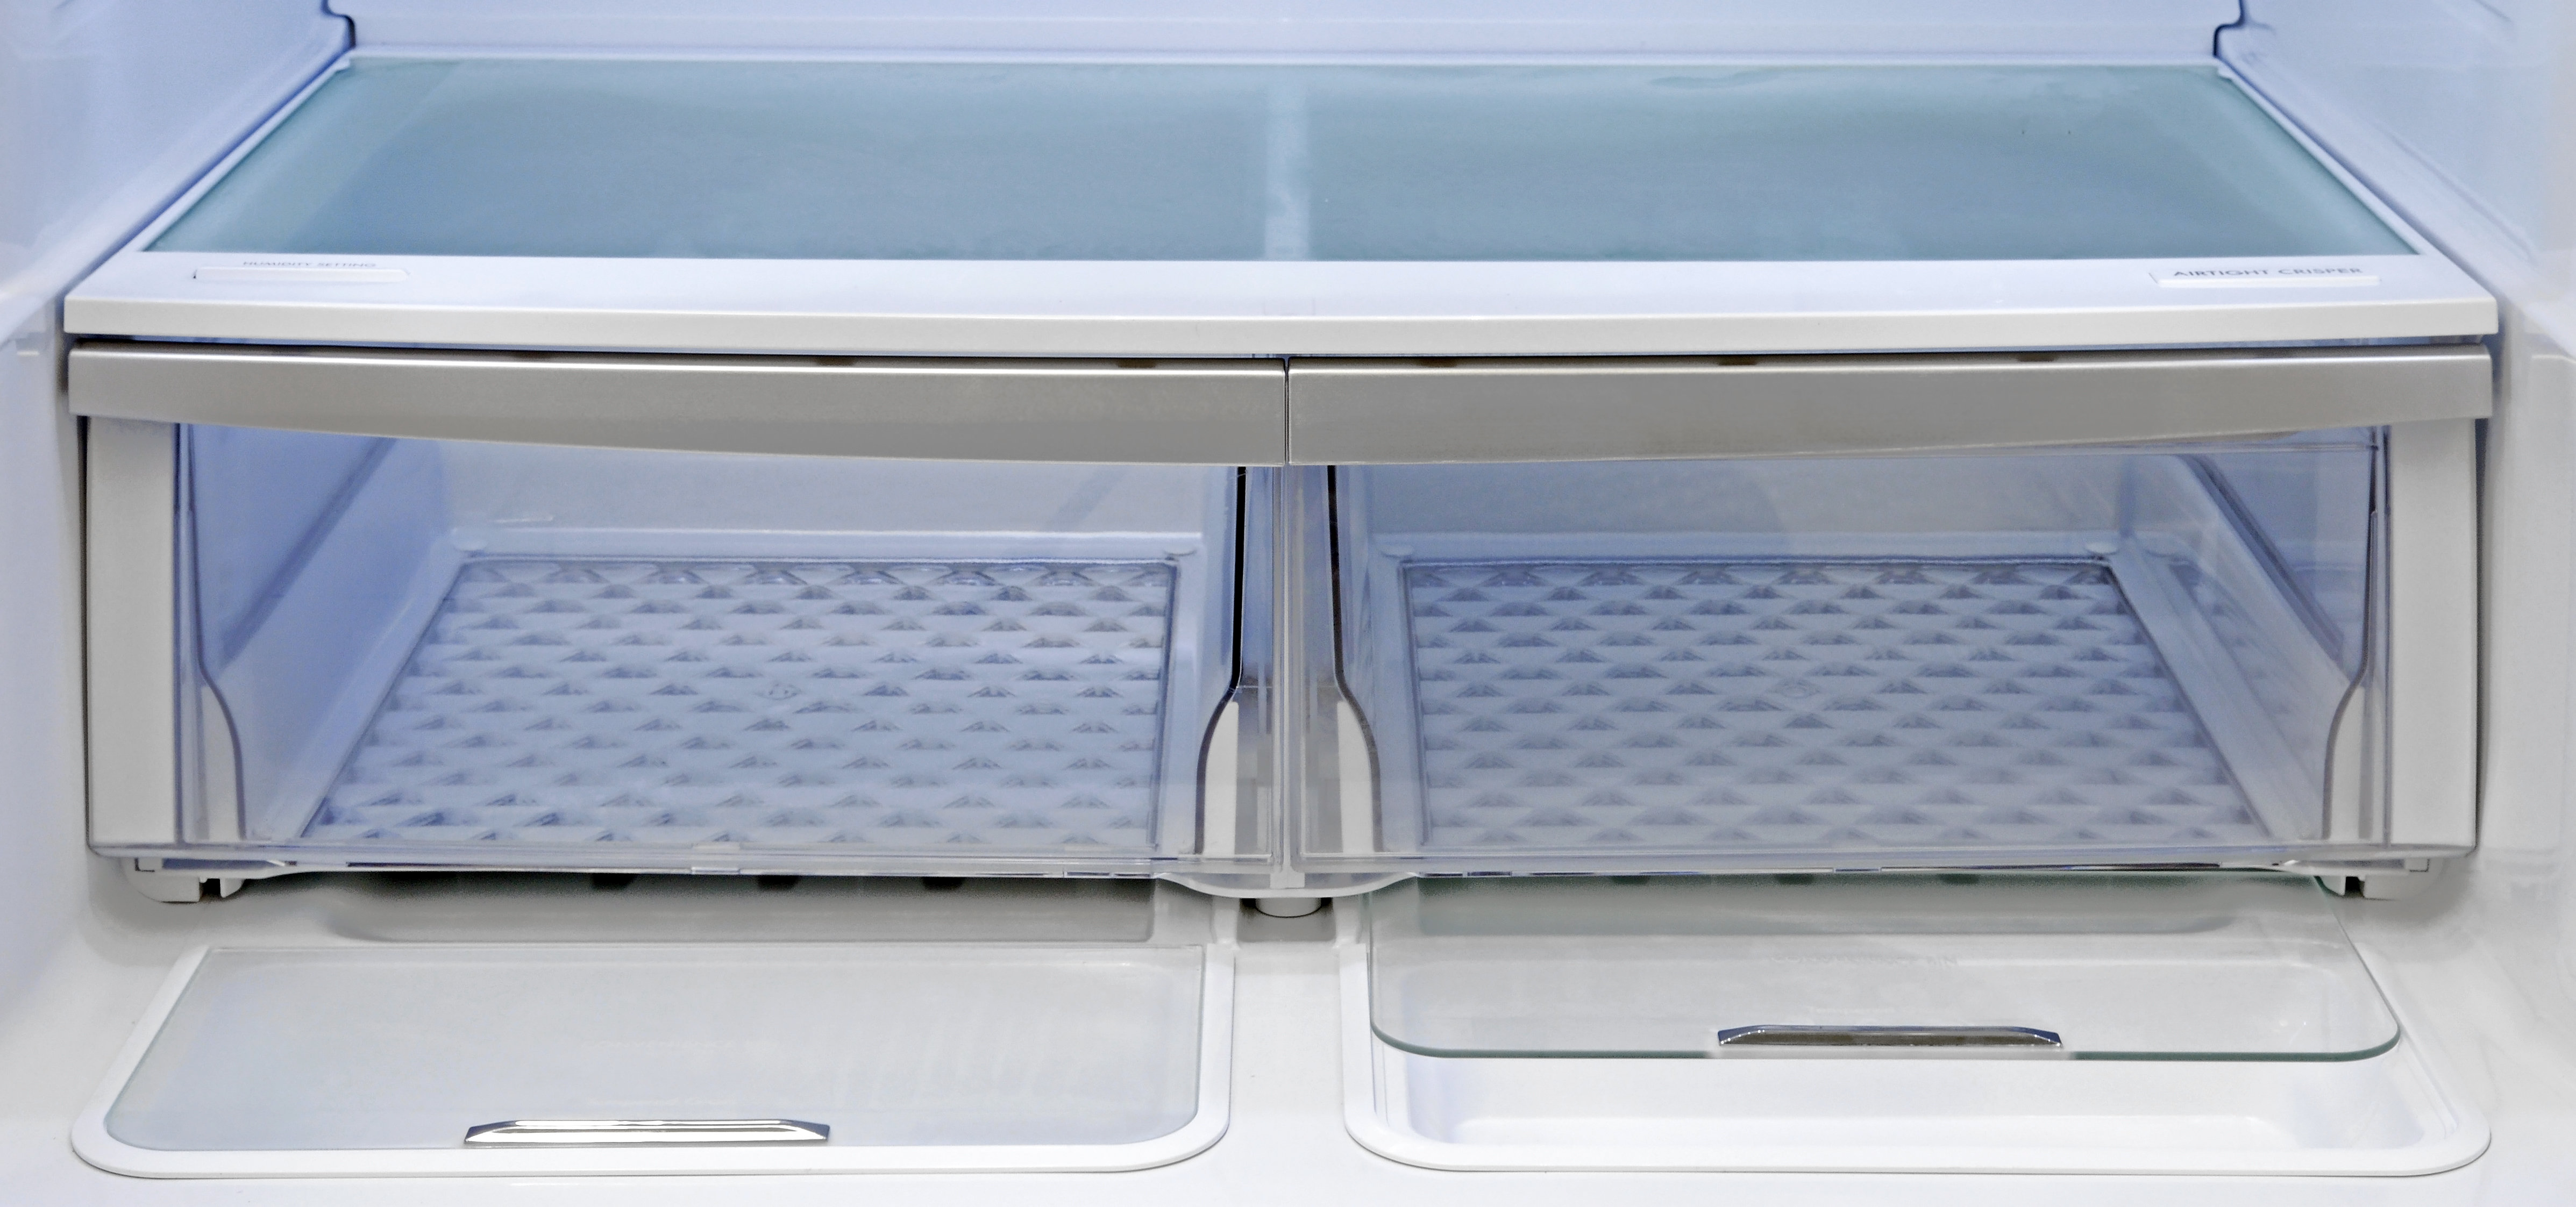 Both of the Kenmore Elite 72483's crispers are roomy and slide with ease. Plus, recessed into the bottom of the fridge compartment right in front of the crispers, you find two extra storage areas.